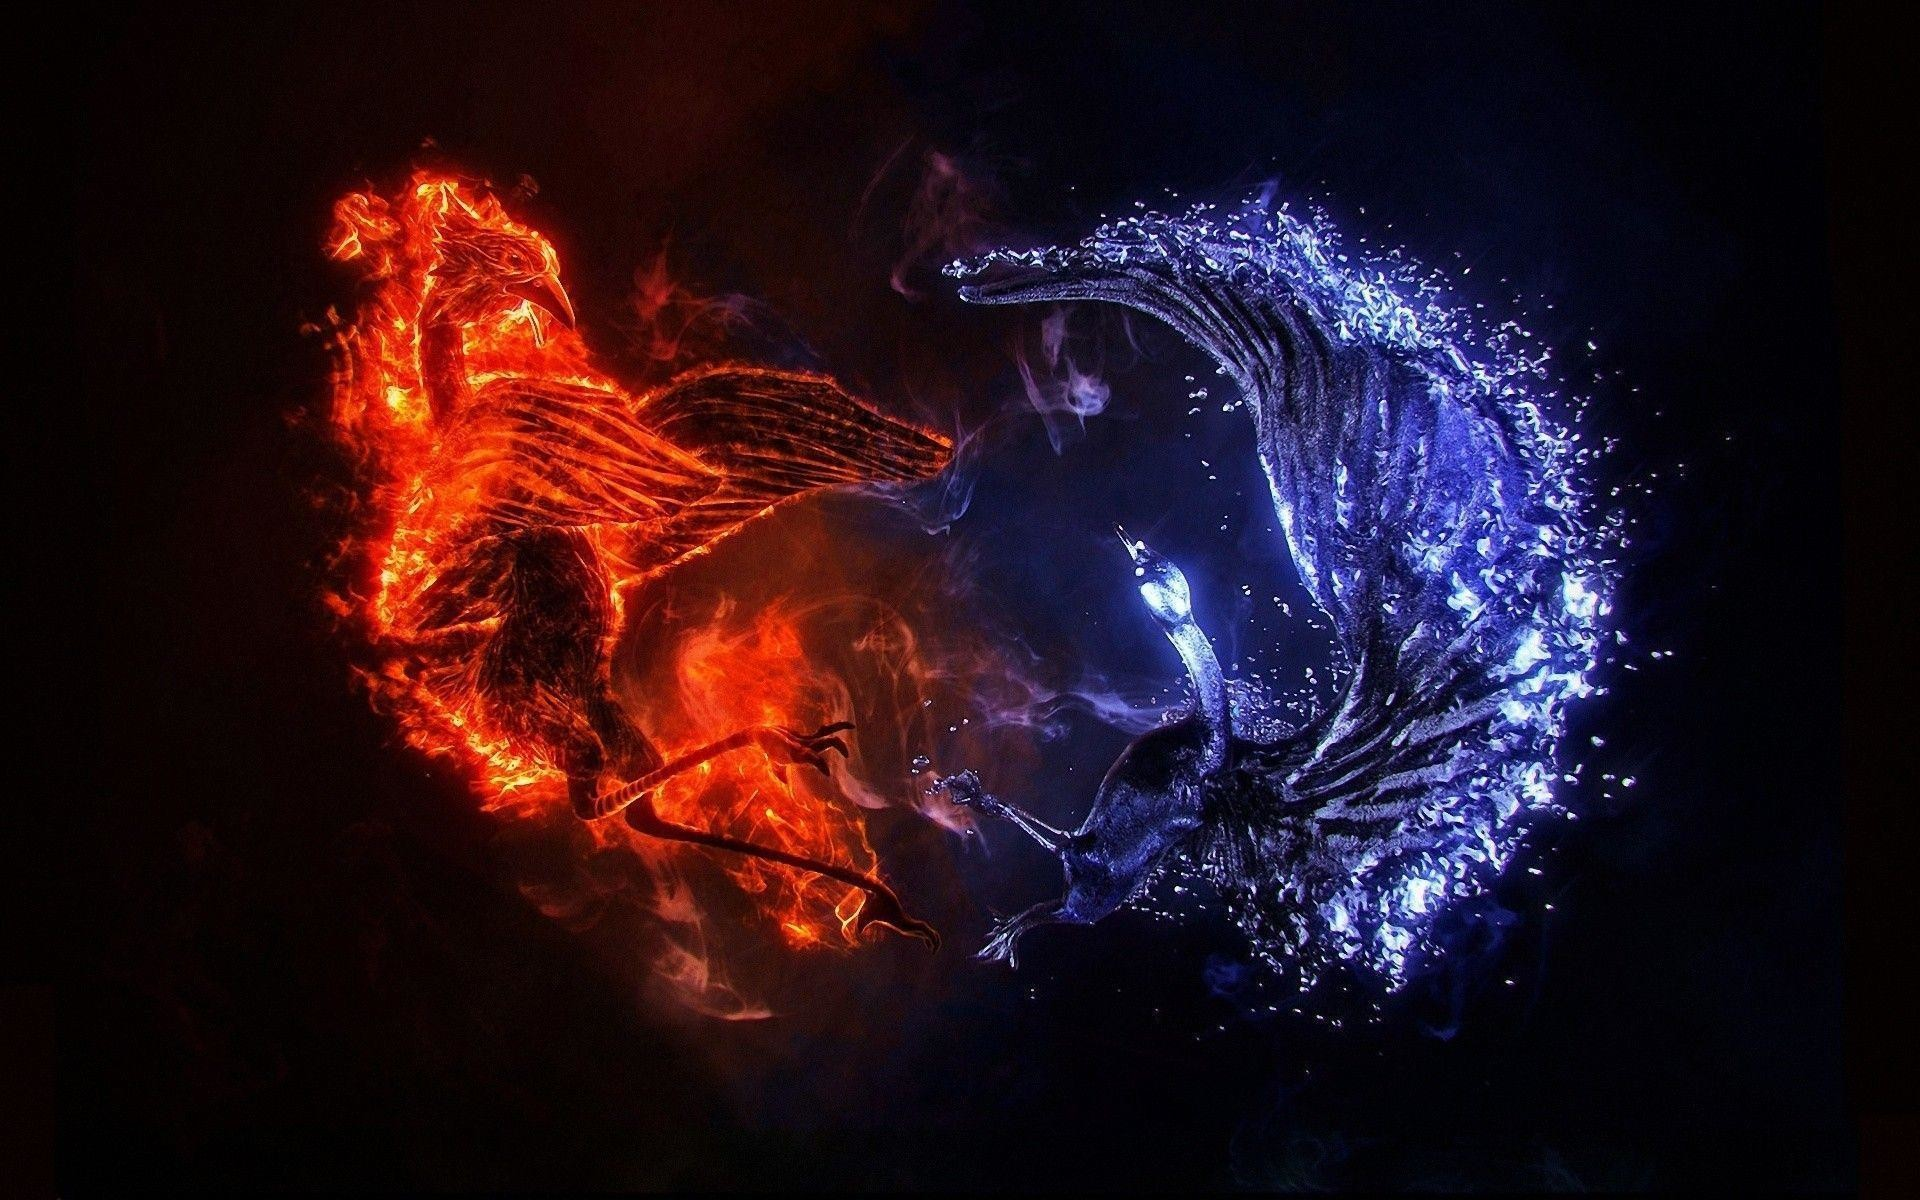 Blue And Red Fire Wallpaper – images free download